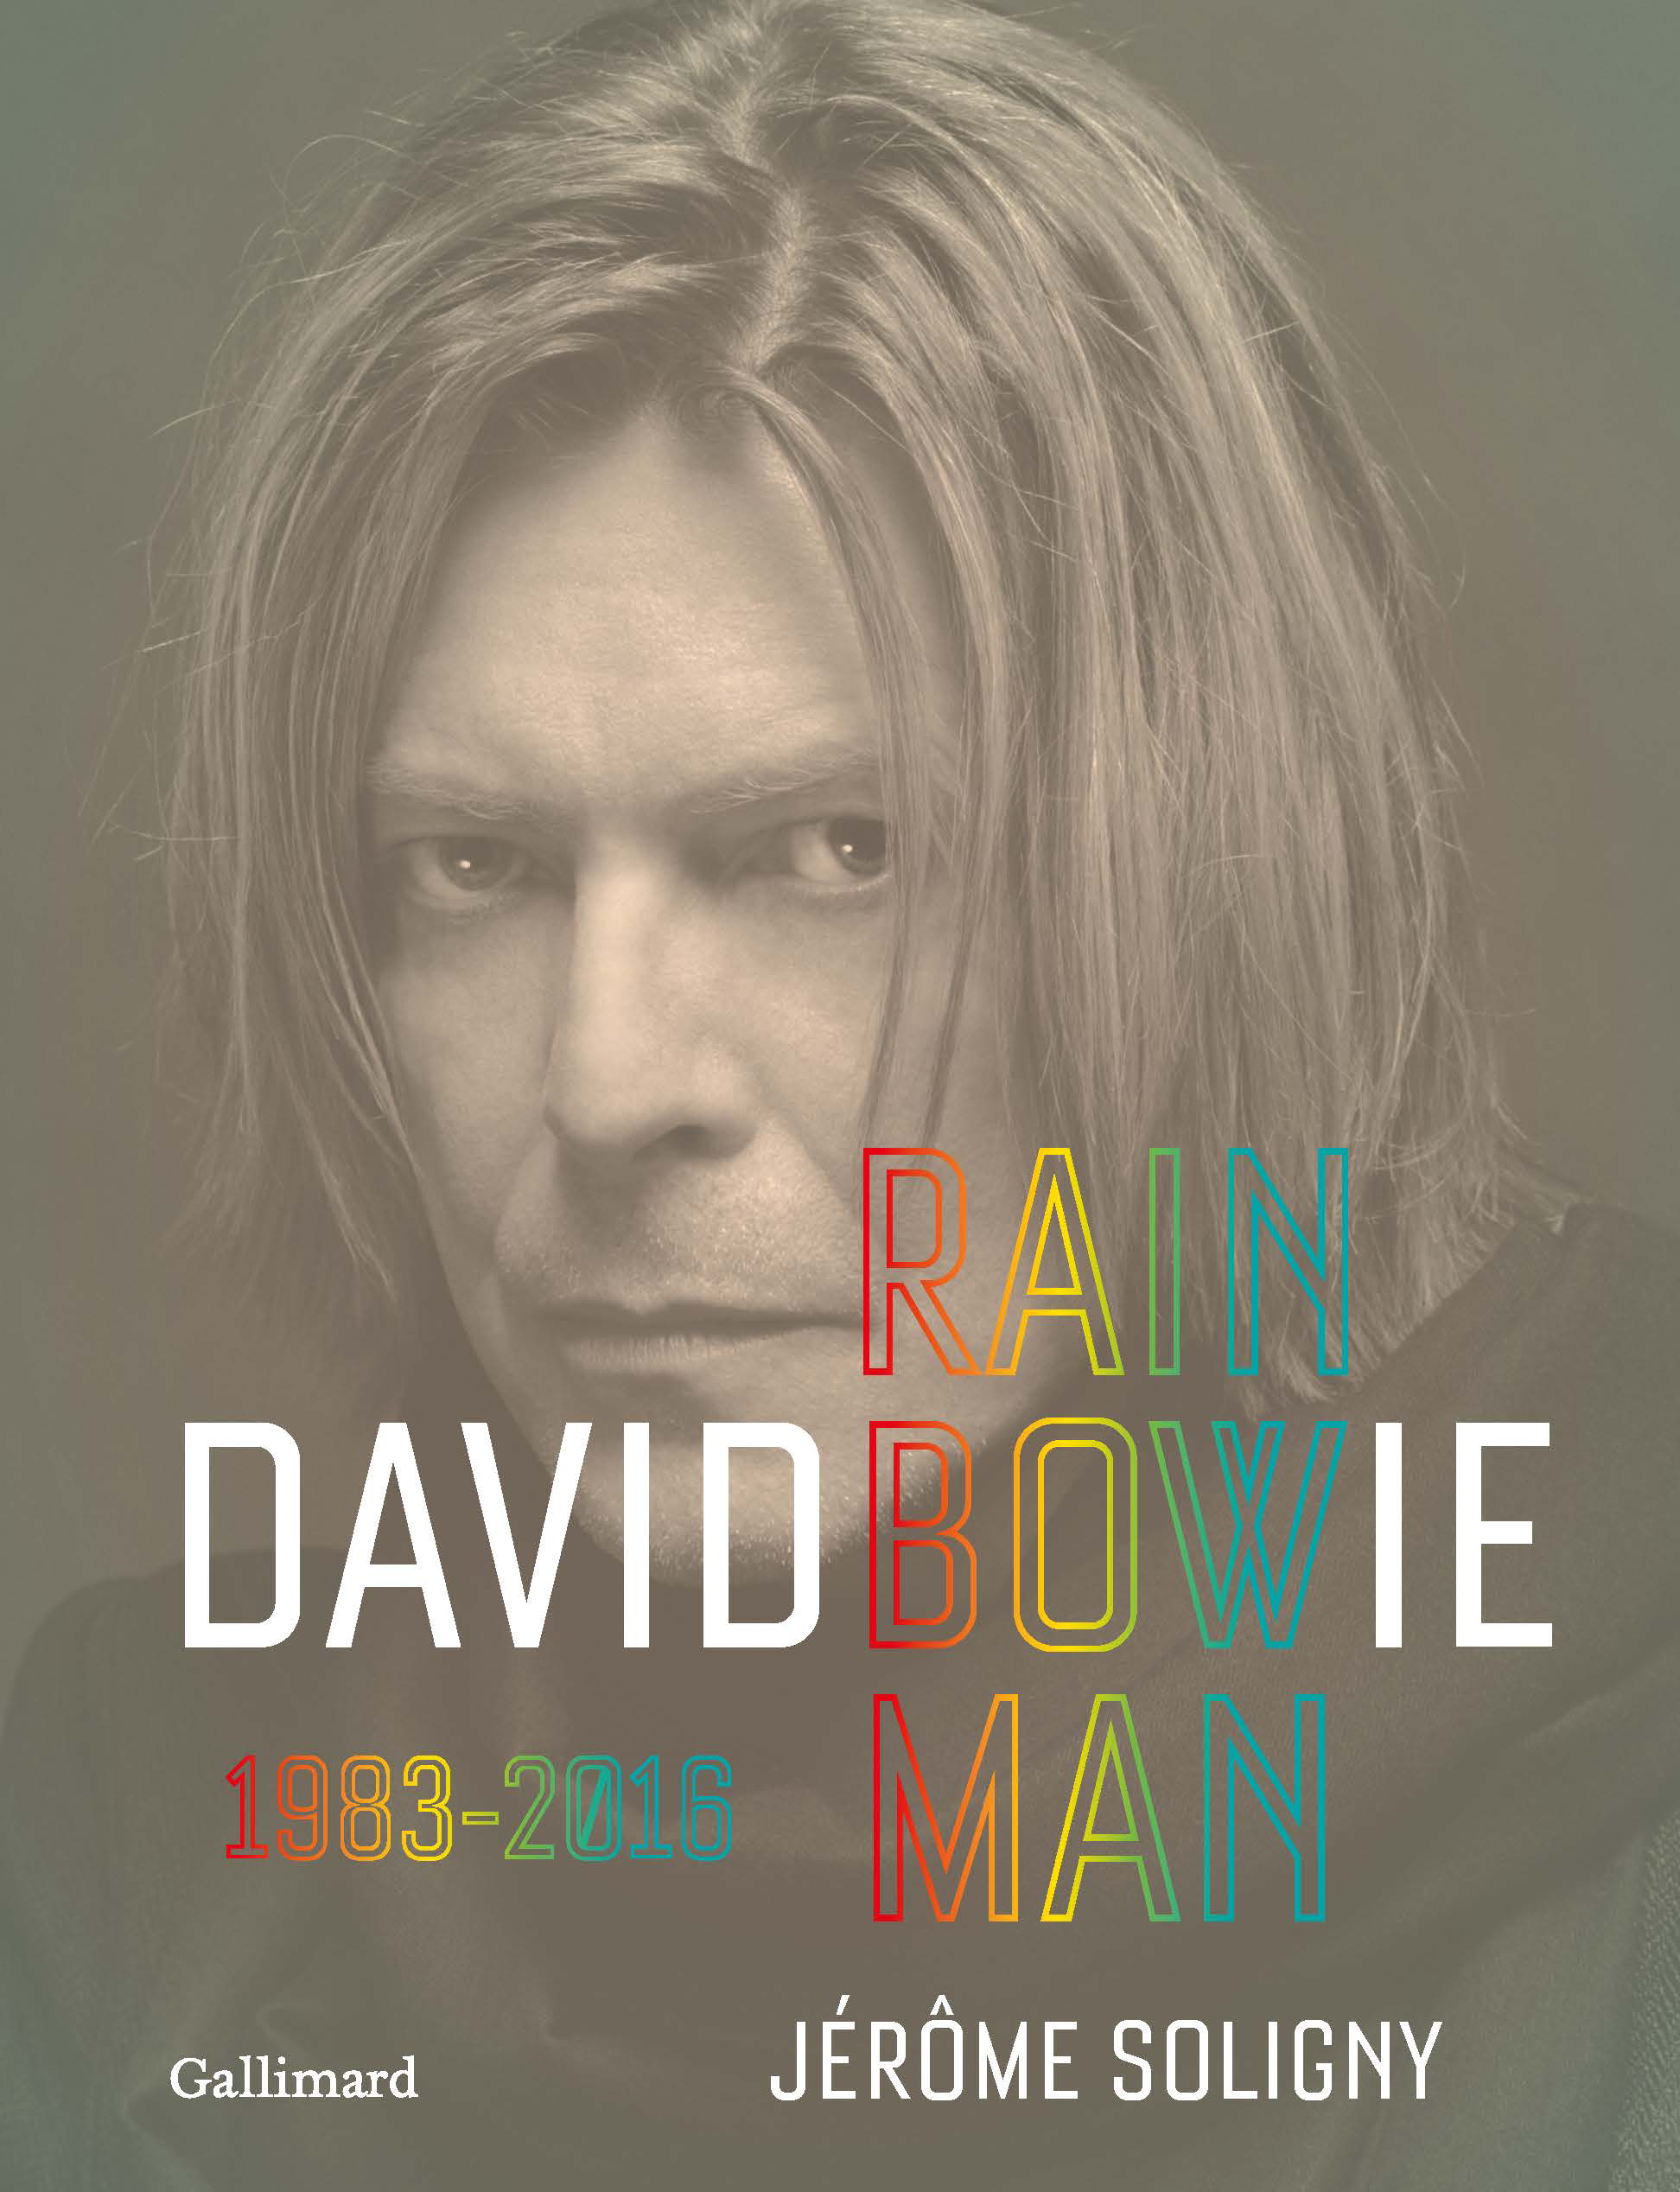 DAVID BOWIE - RAINBOWMAN 1983-2016